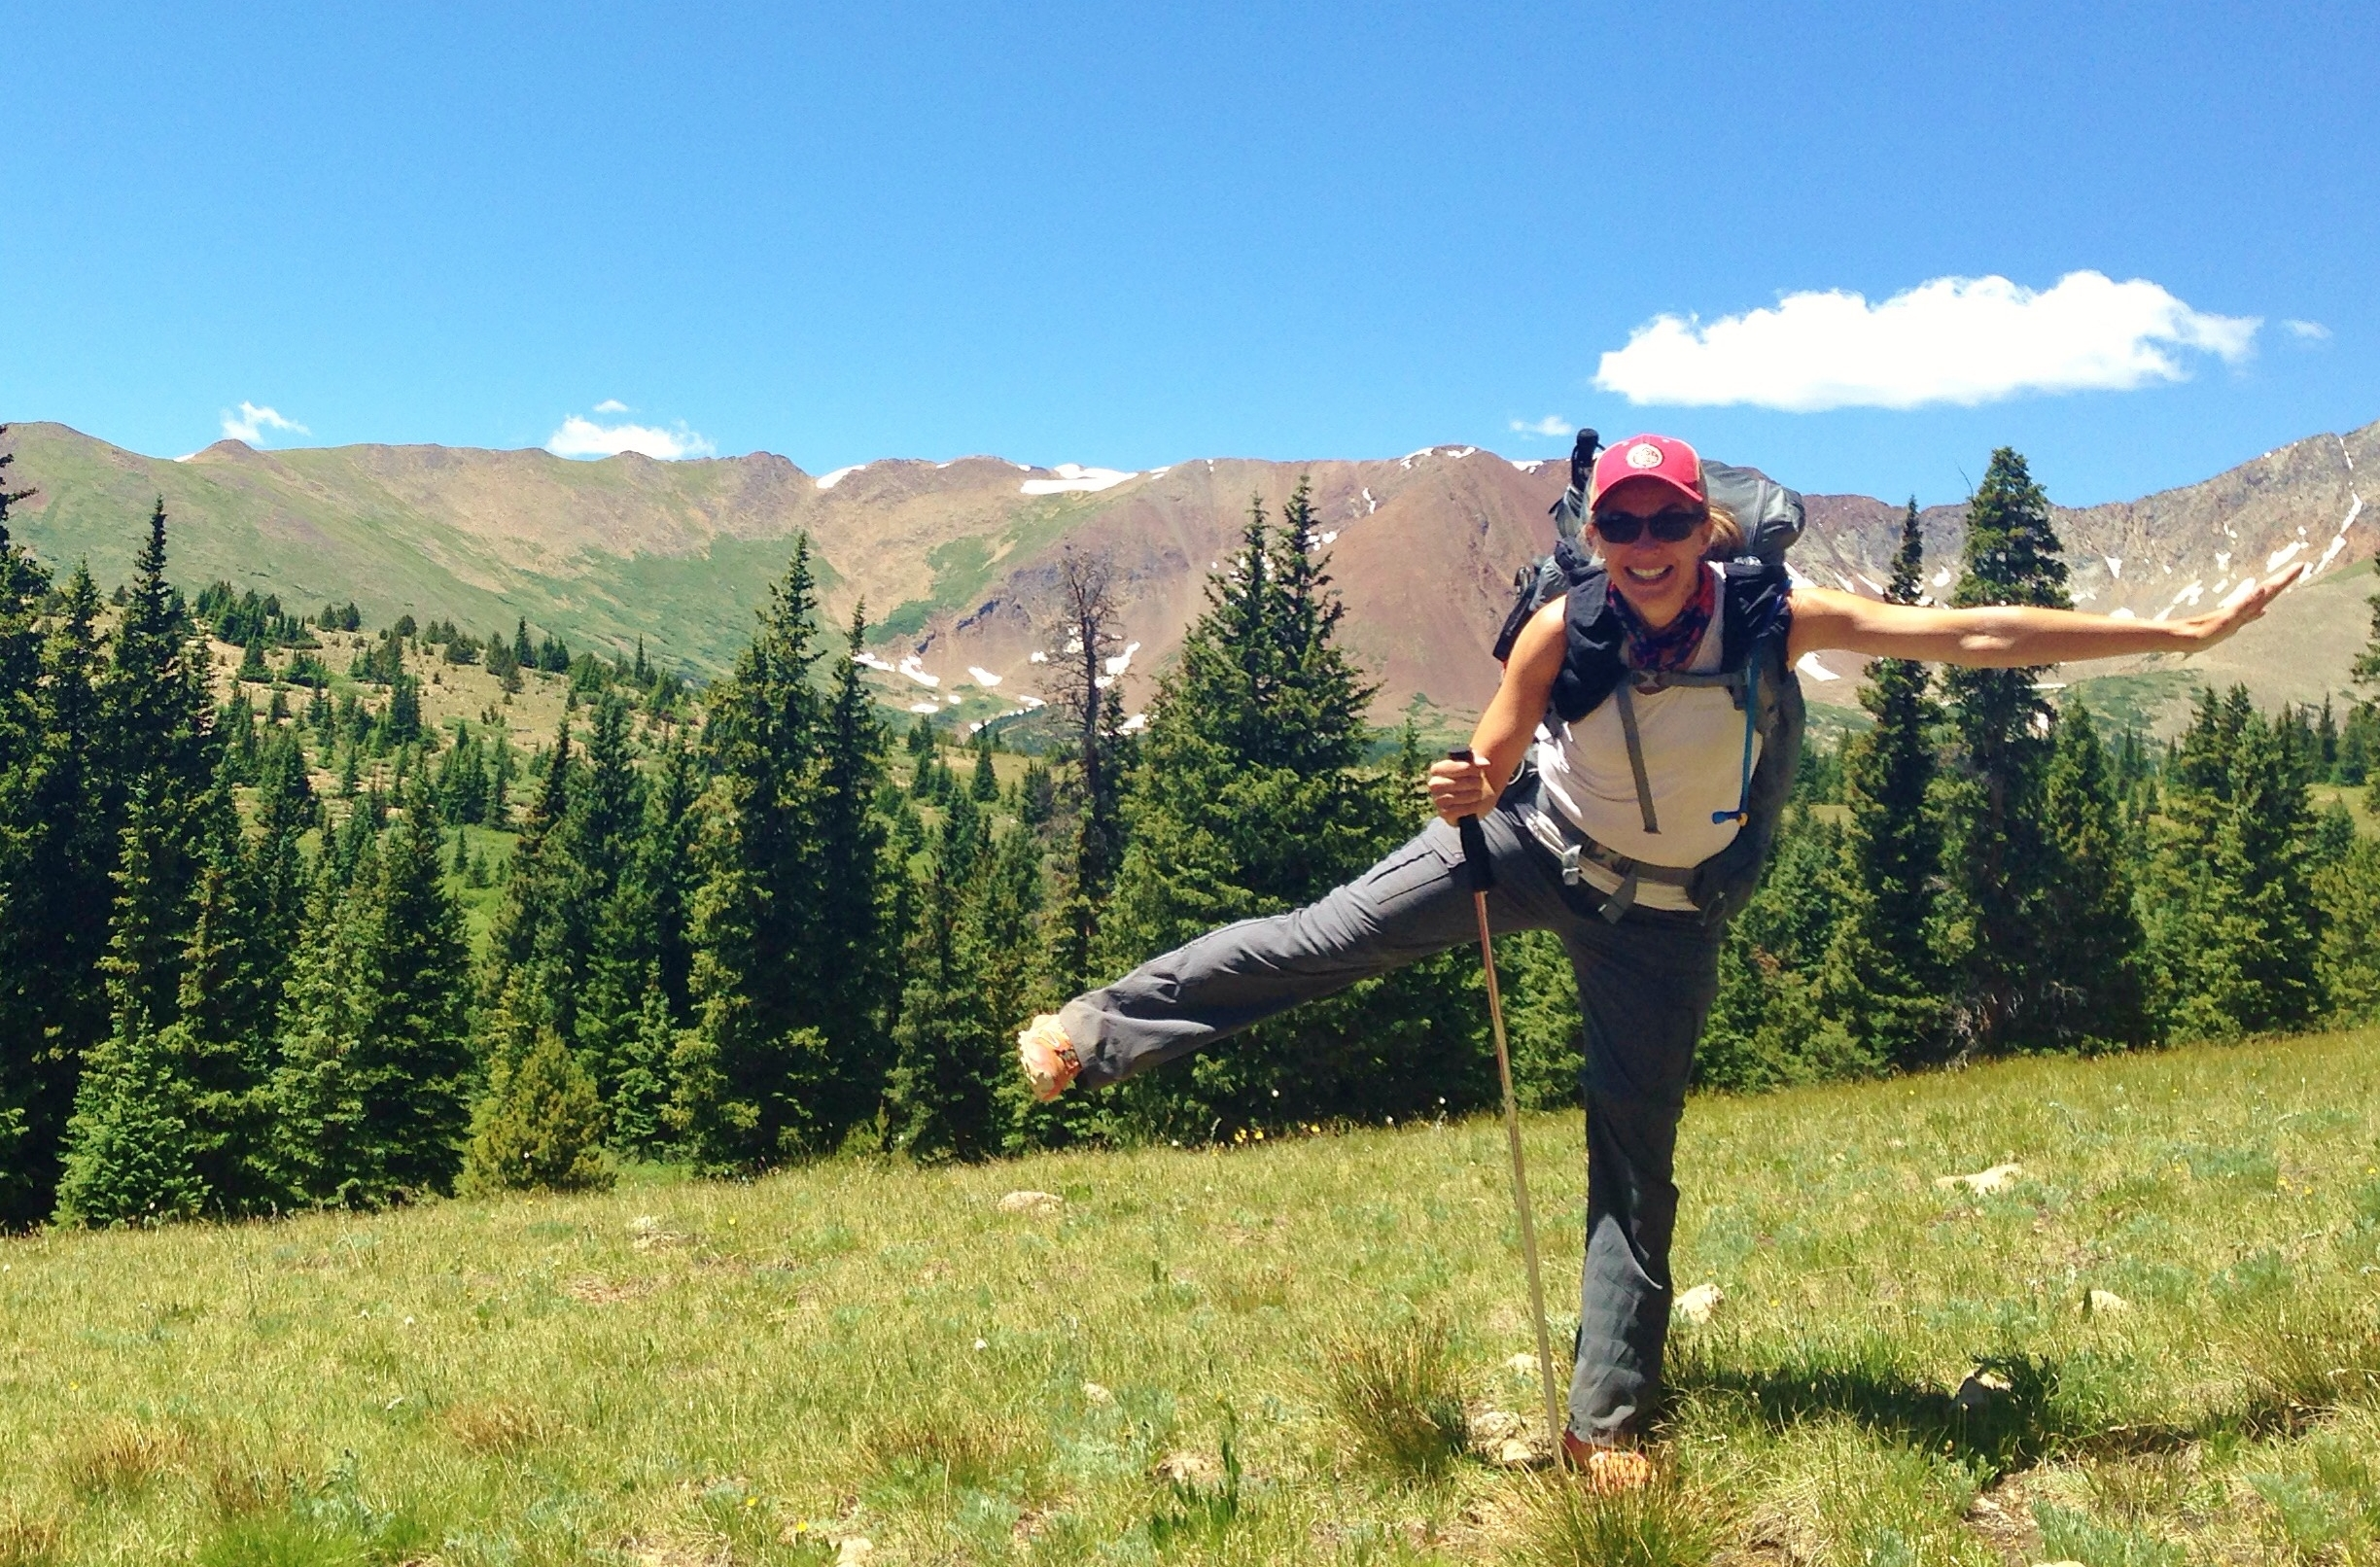 Becky Jensen is a writer, hiker, and mother from Fort COllins, Colorado.